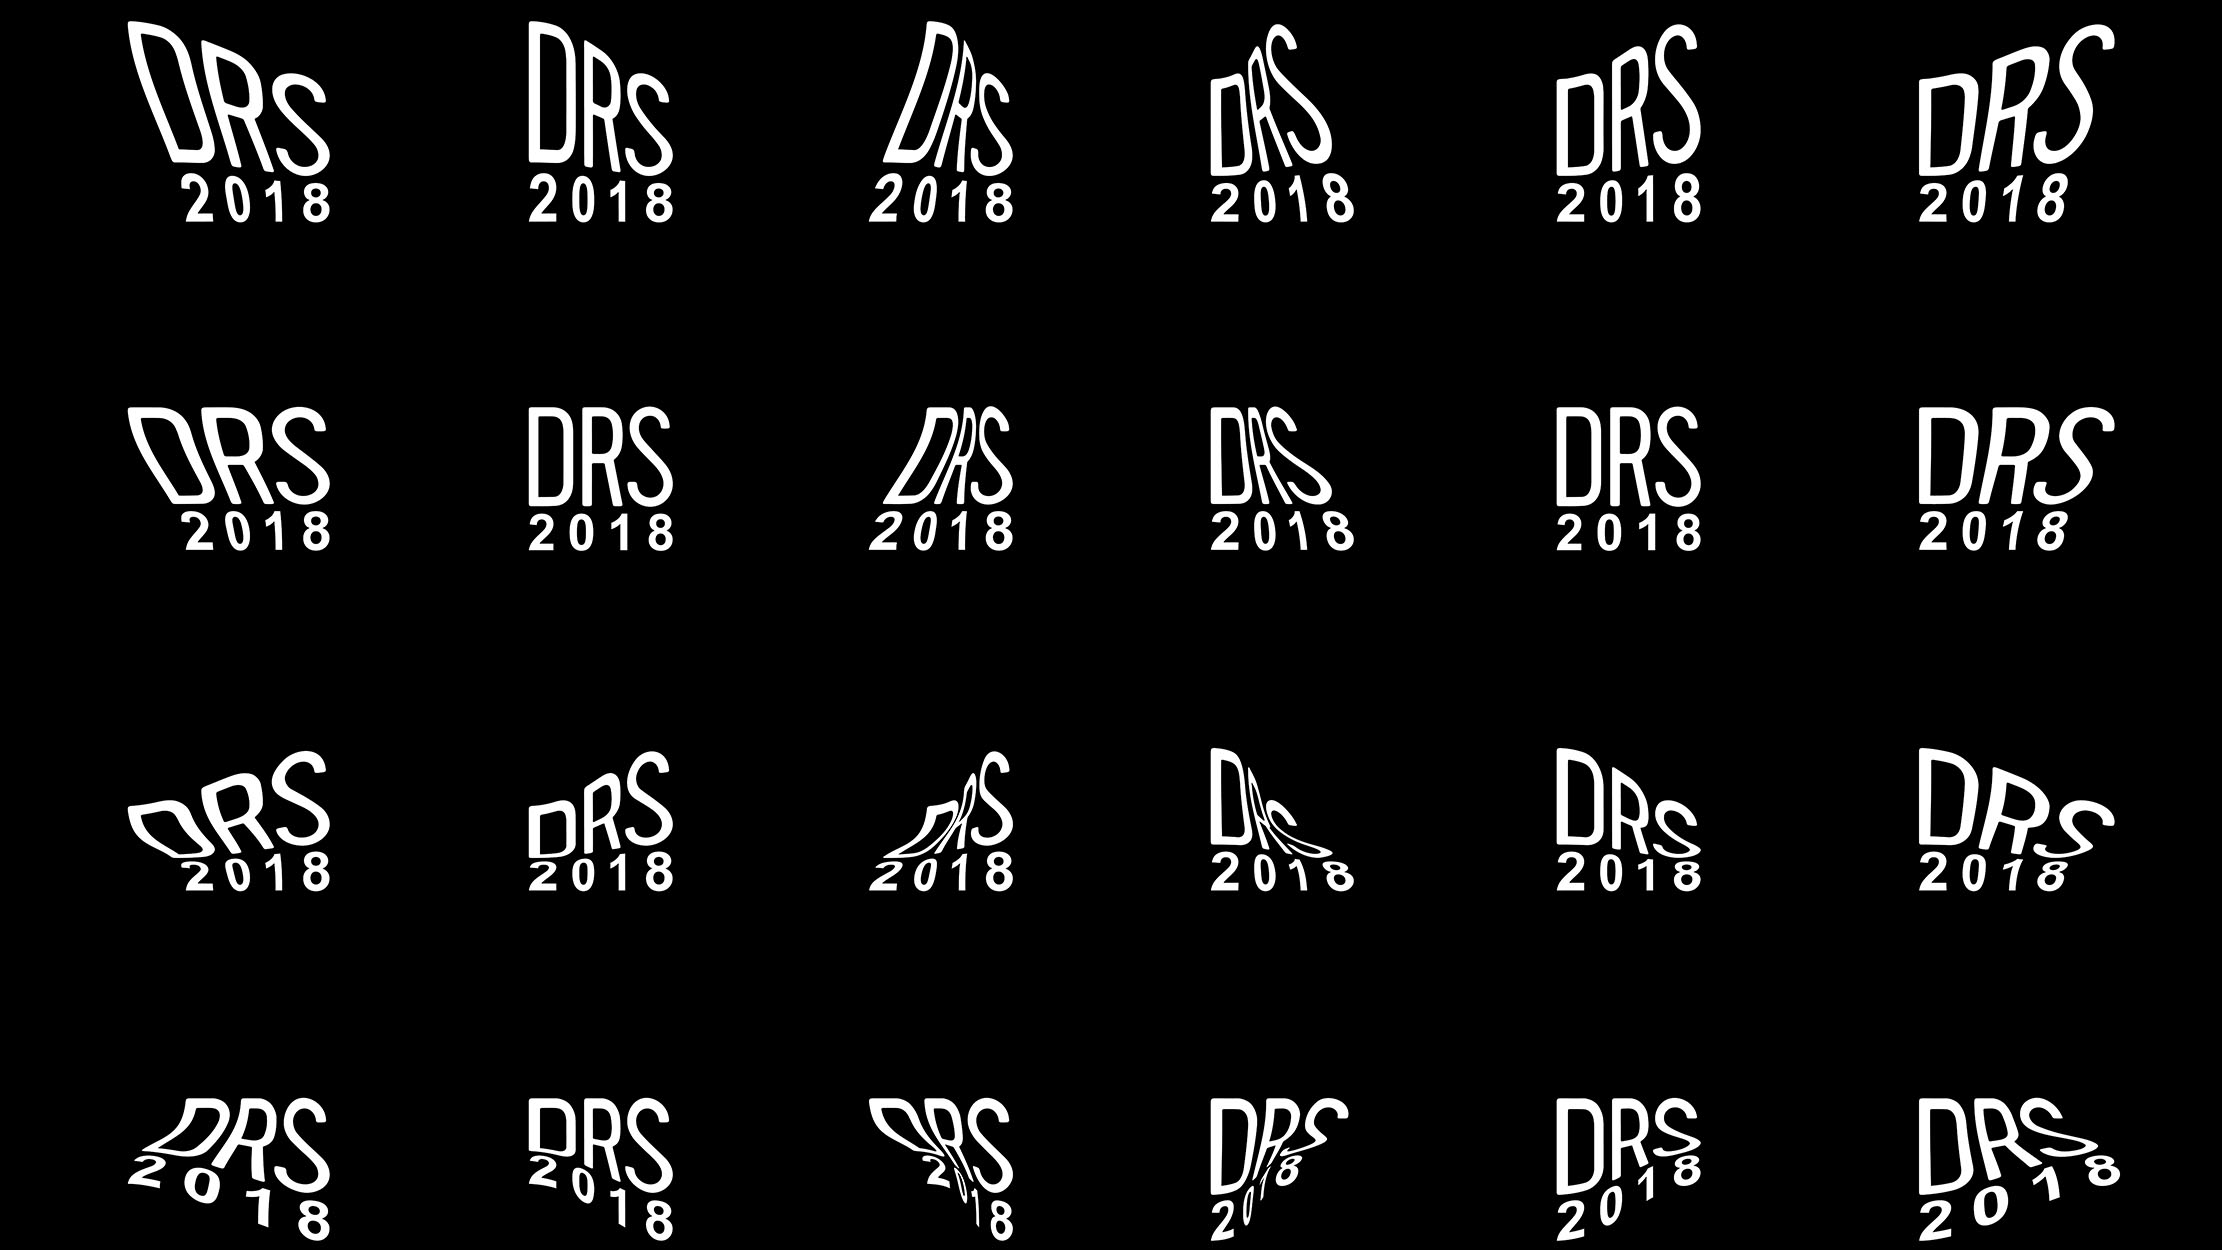 DRS 2018 Conference Visual Identity -2